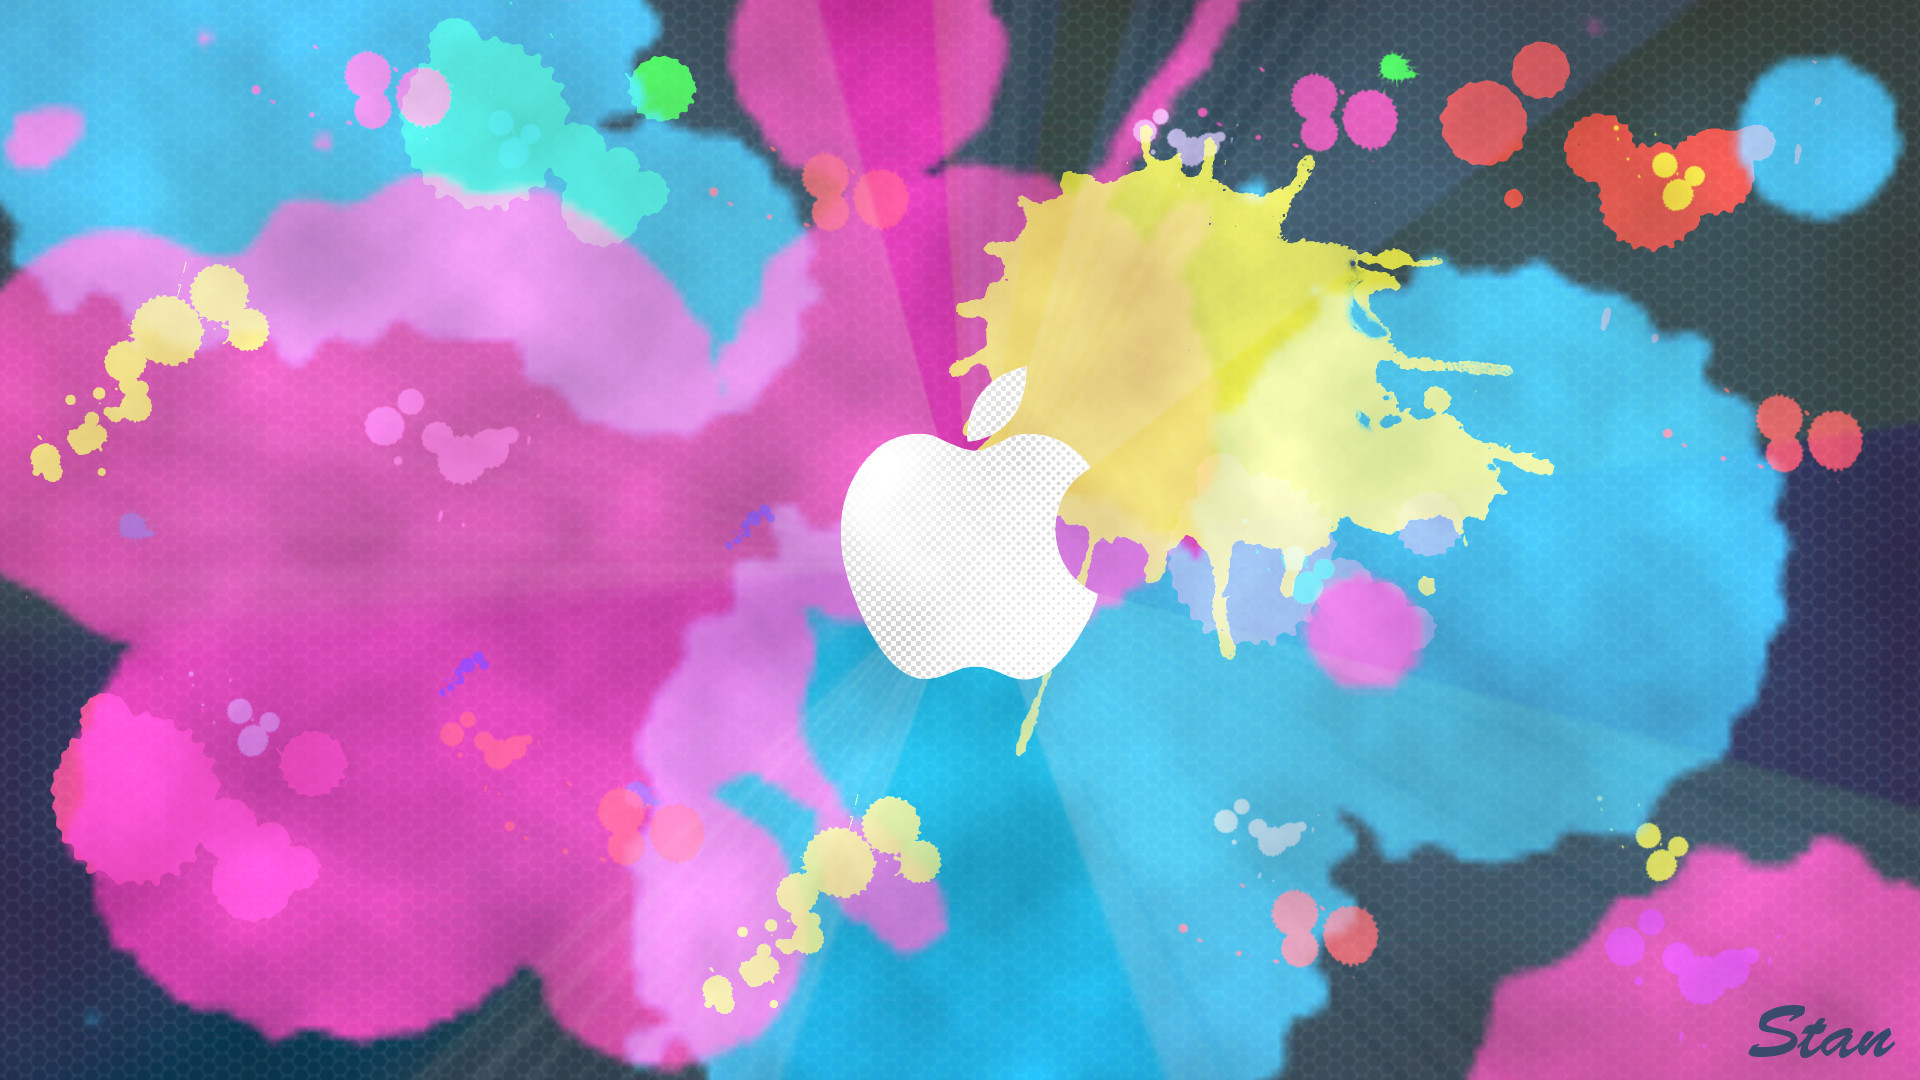 Apple Background – Paint by mylifeasstan on DeviantArt